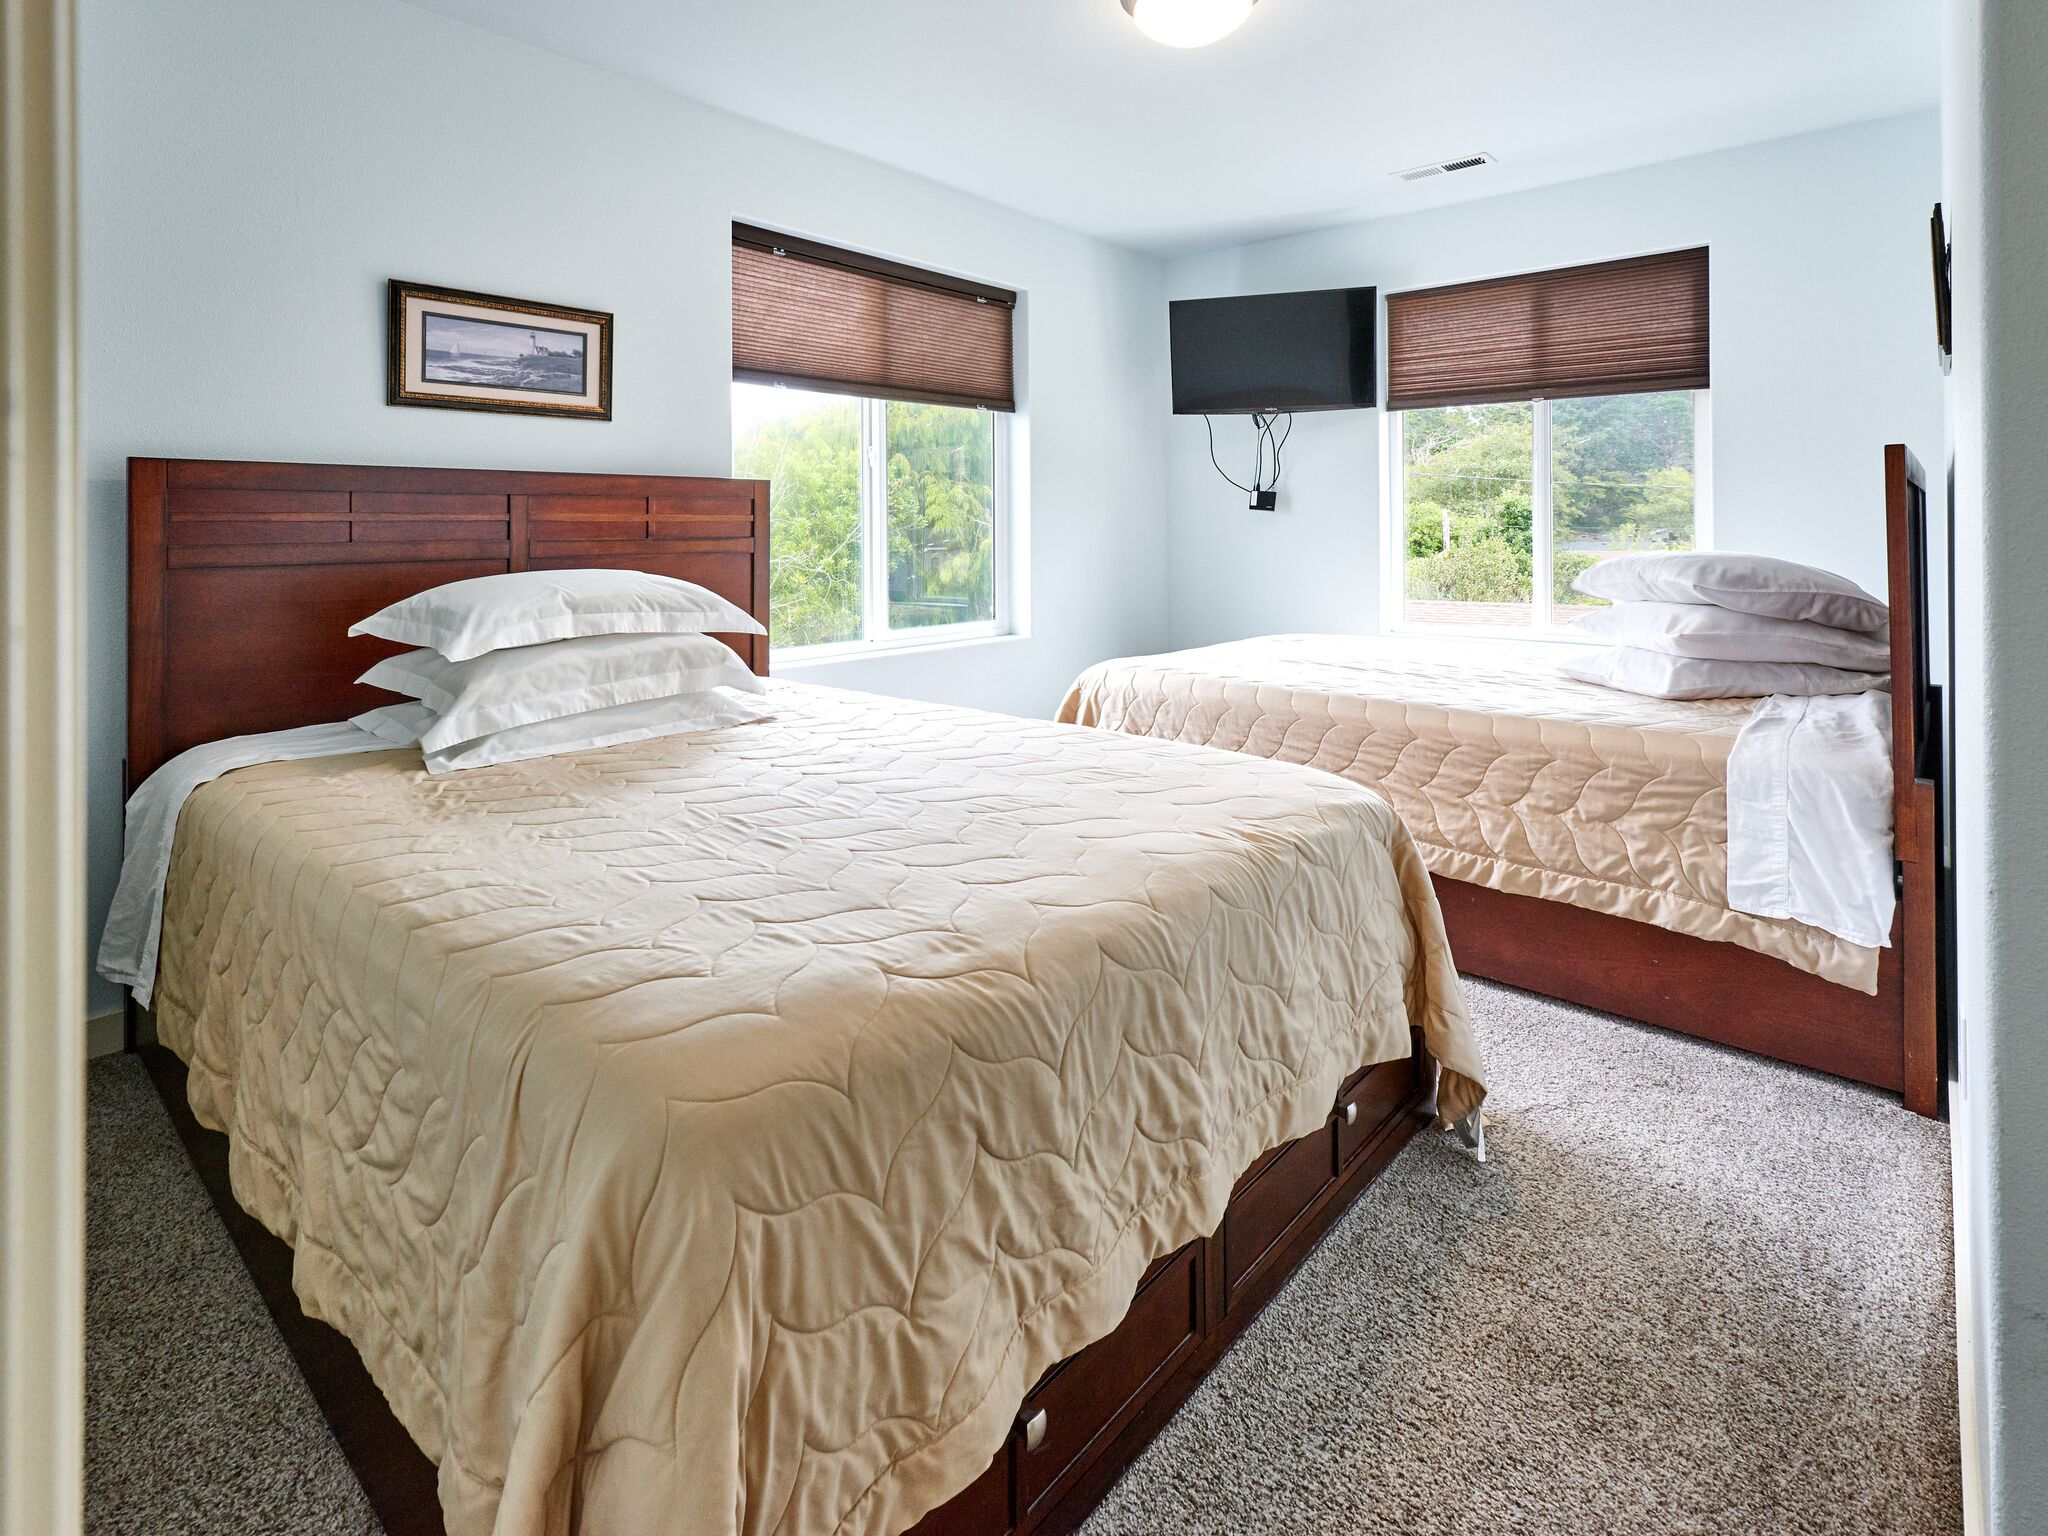 Vacation home bedroom with two beds.